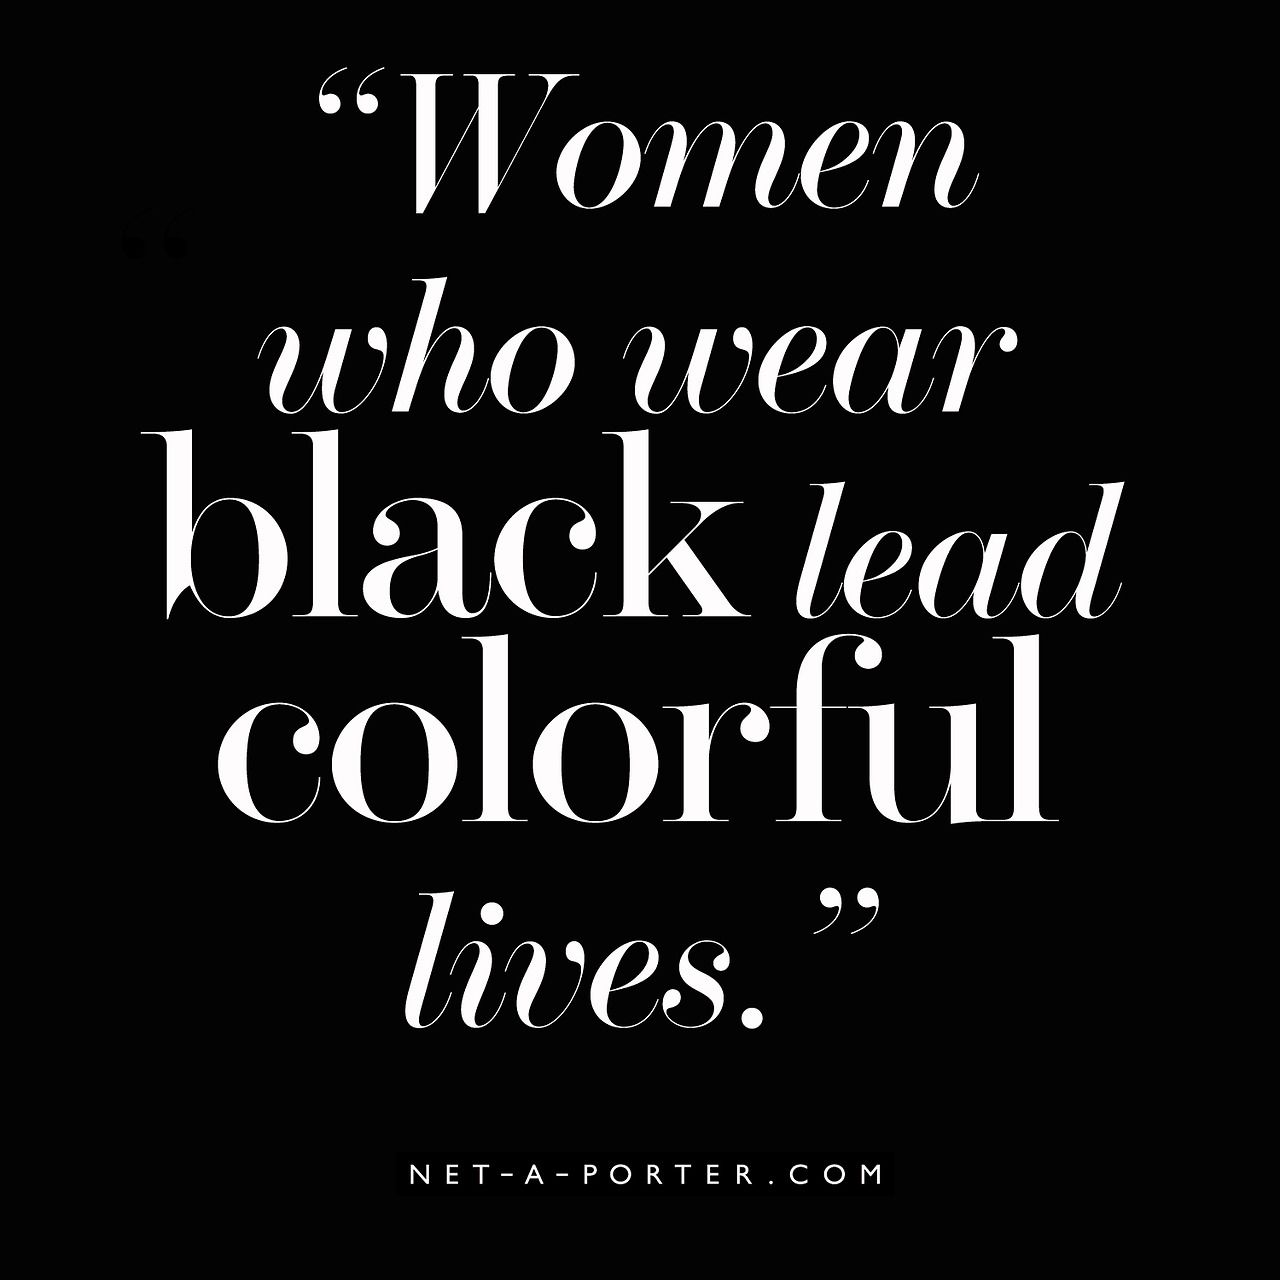 Word Said The Girl In All Black Black Quotes Fashion Quotes Black Quotes [ 1280 x 1280 Pixel ]